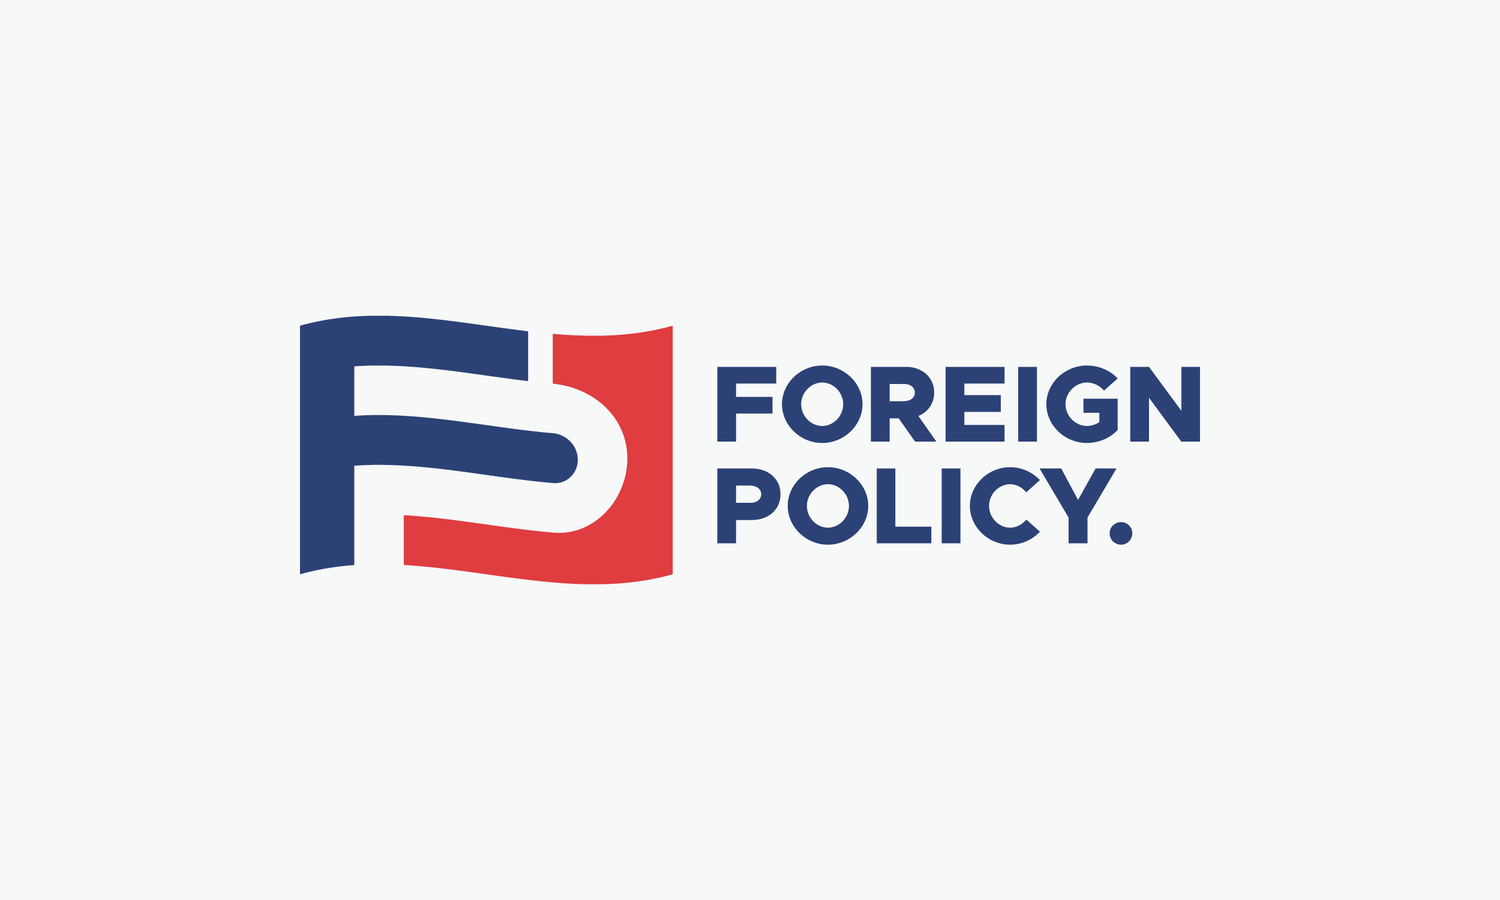 foreign policy clothing brand design cfowlerdesign connor fowler